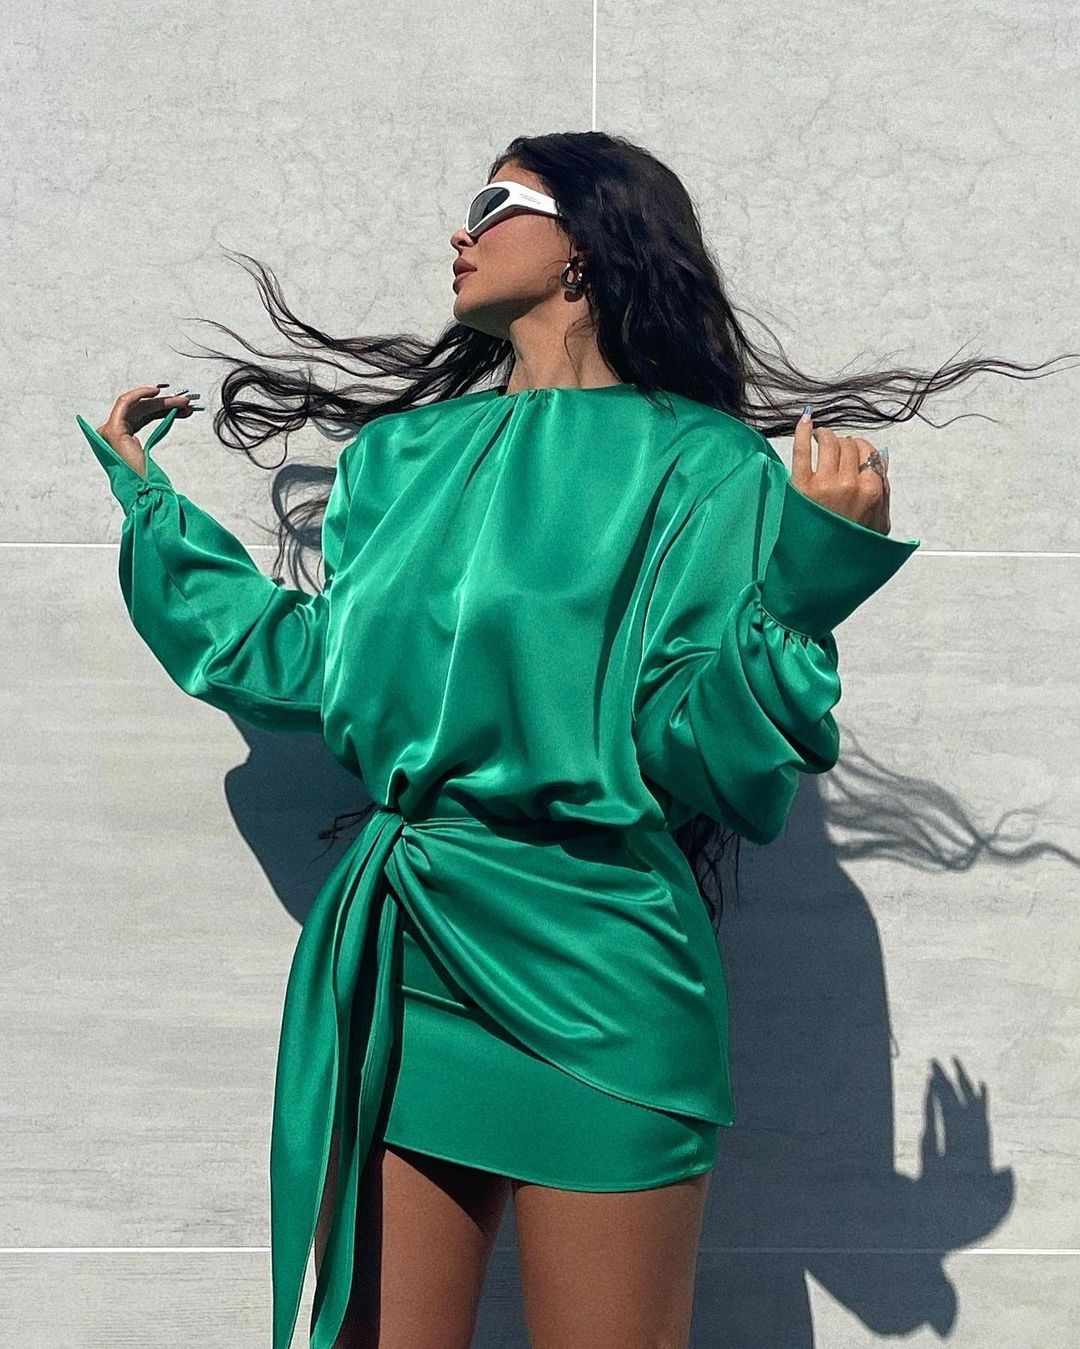 Kylie Jenner donning a Shiny green Attico crepe draped mini dress with a satin fabric, extra long sleeves, asymmetric design, a high neck and asymmetric hem